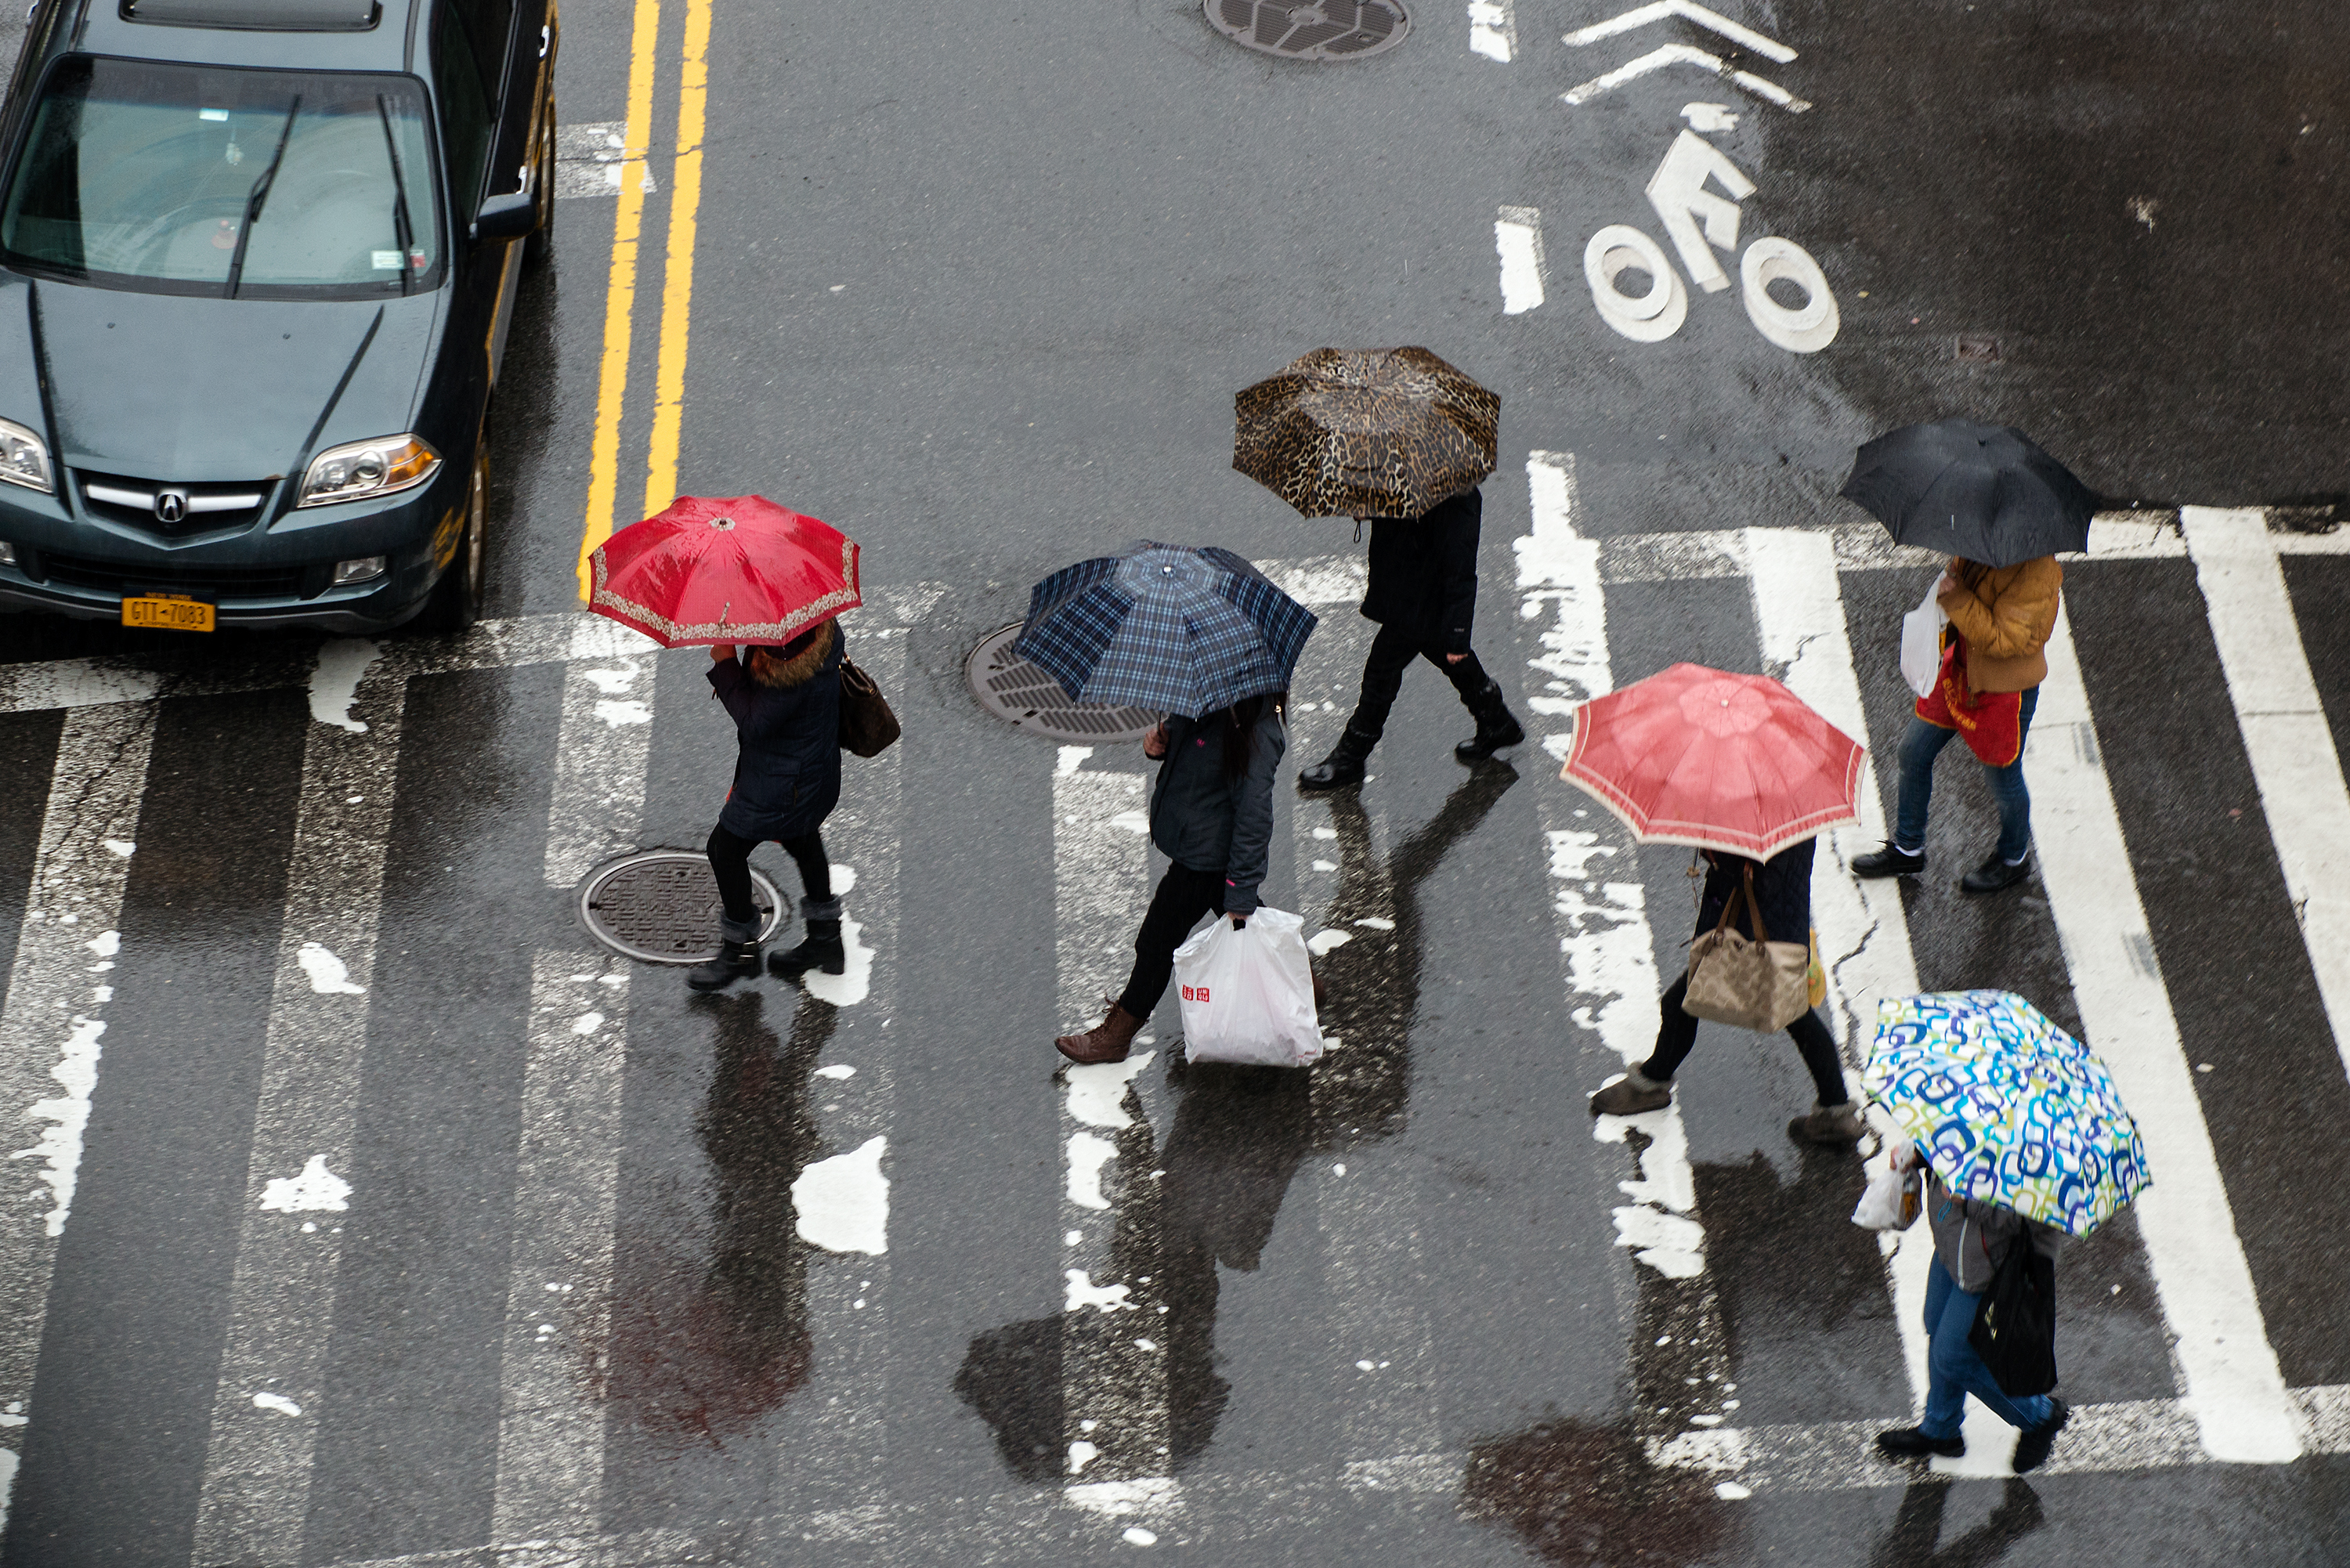 NEW YORK, NY - FEBRUARY 24: Pedestrians cross the street in Chinatown on February 24, 2016 in New York City.  According to the National Weather Service, as much as 1.5 inches of rain was expected throughout the day and a wind advisory was to begin at 6 pm. (Photo by Bryan Thomas/Getty Images)